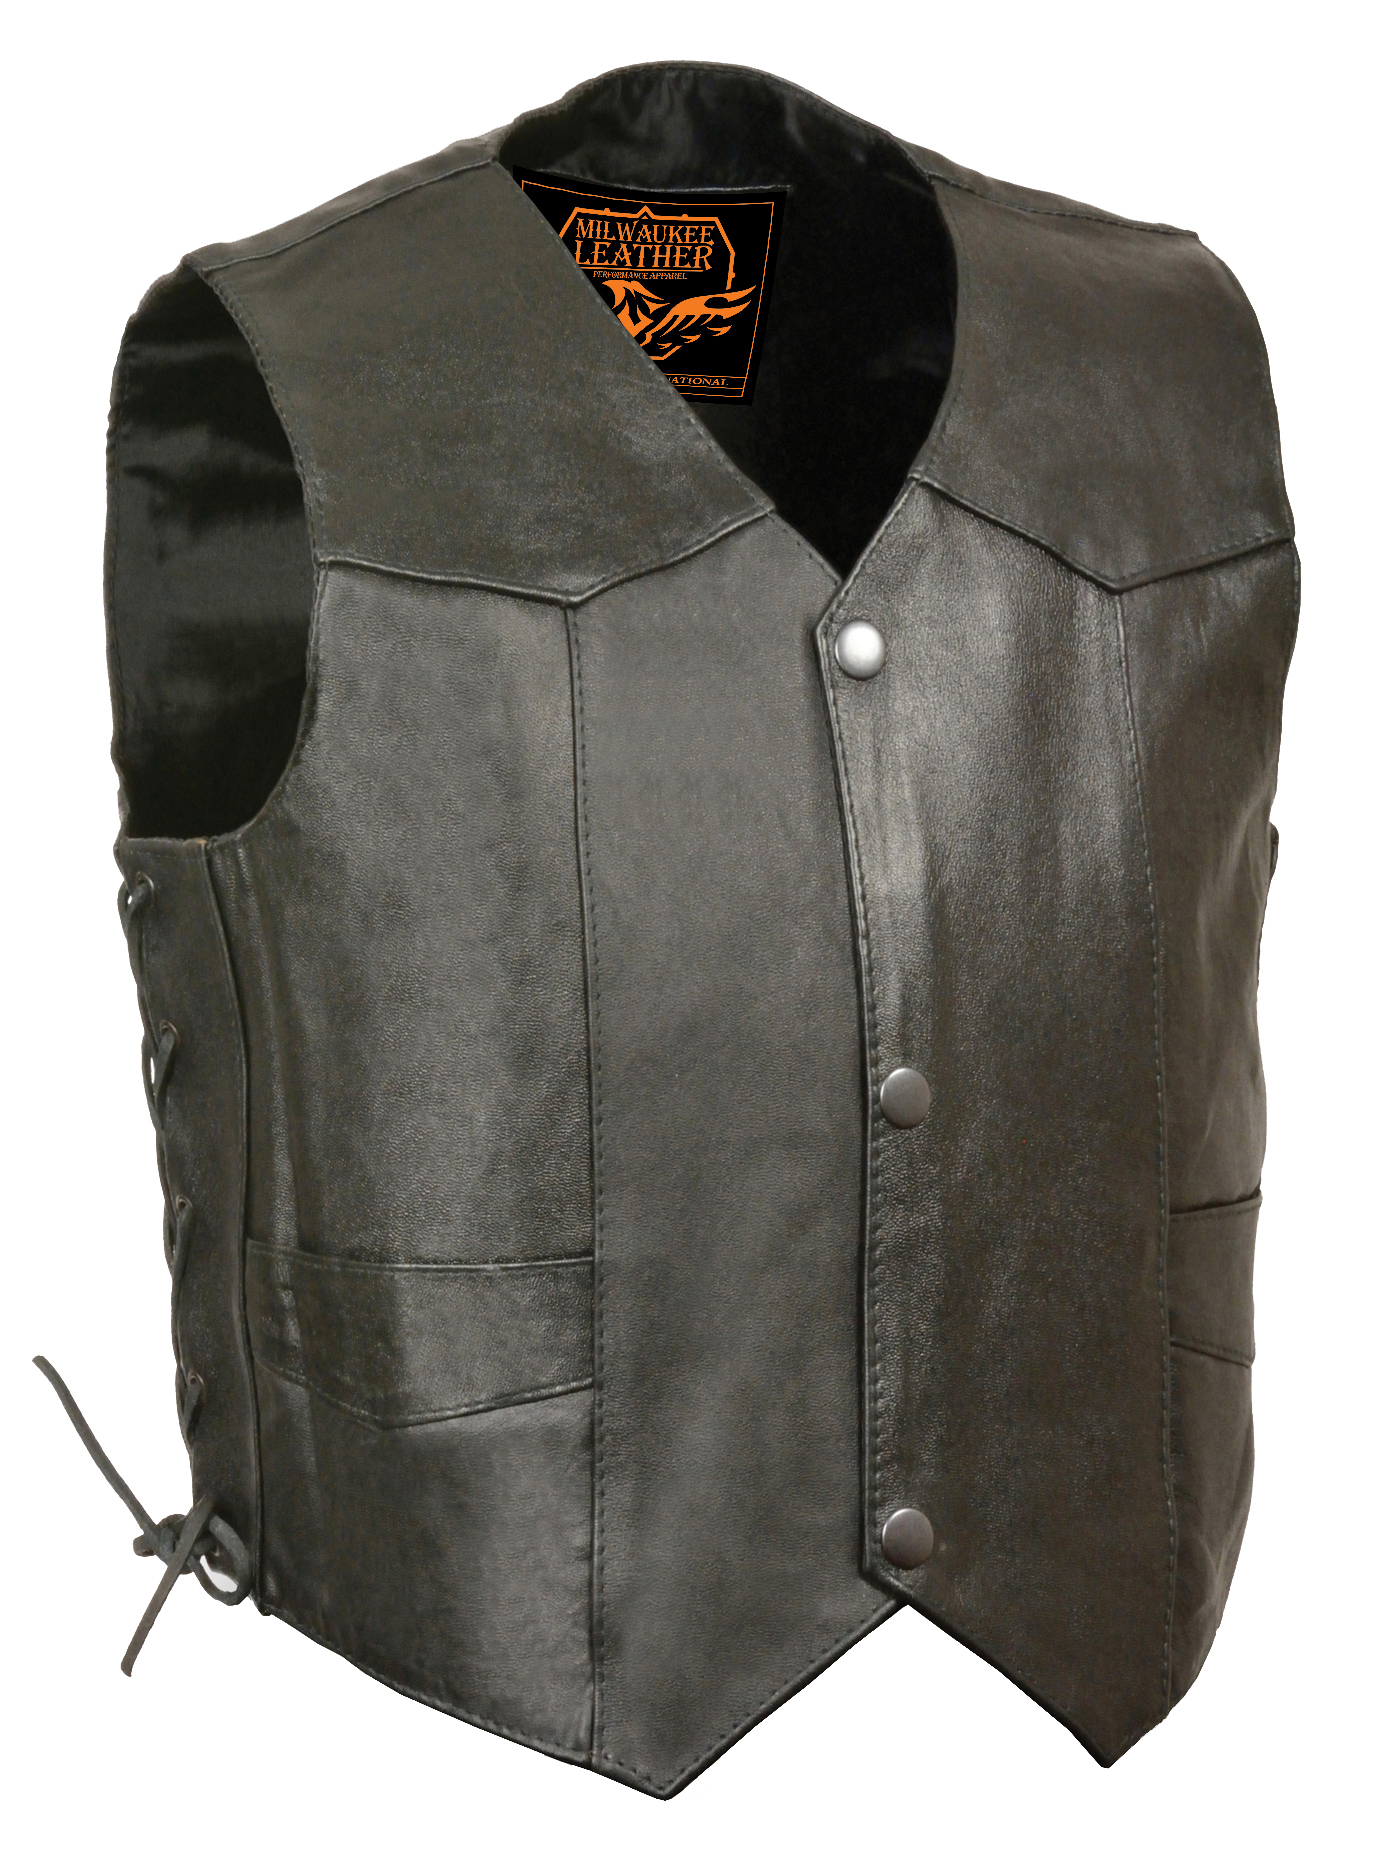 Black, 5X-Large Milwaukee Leather Kids Vest with Side Laces